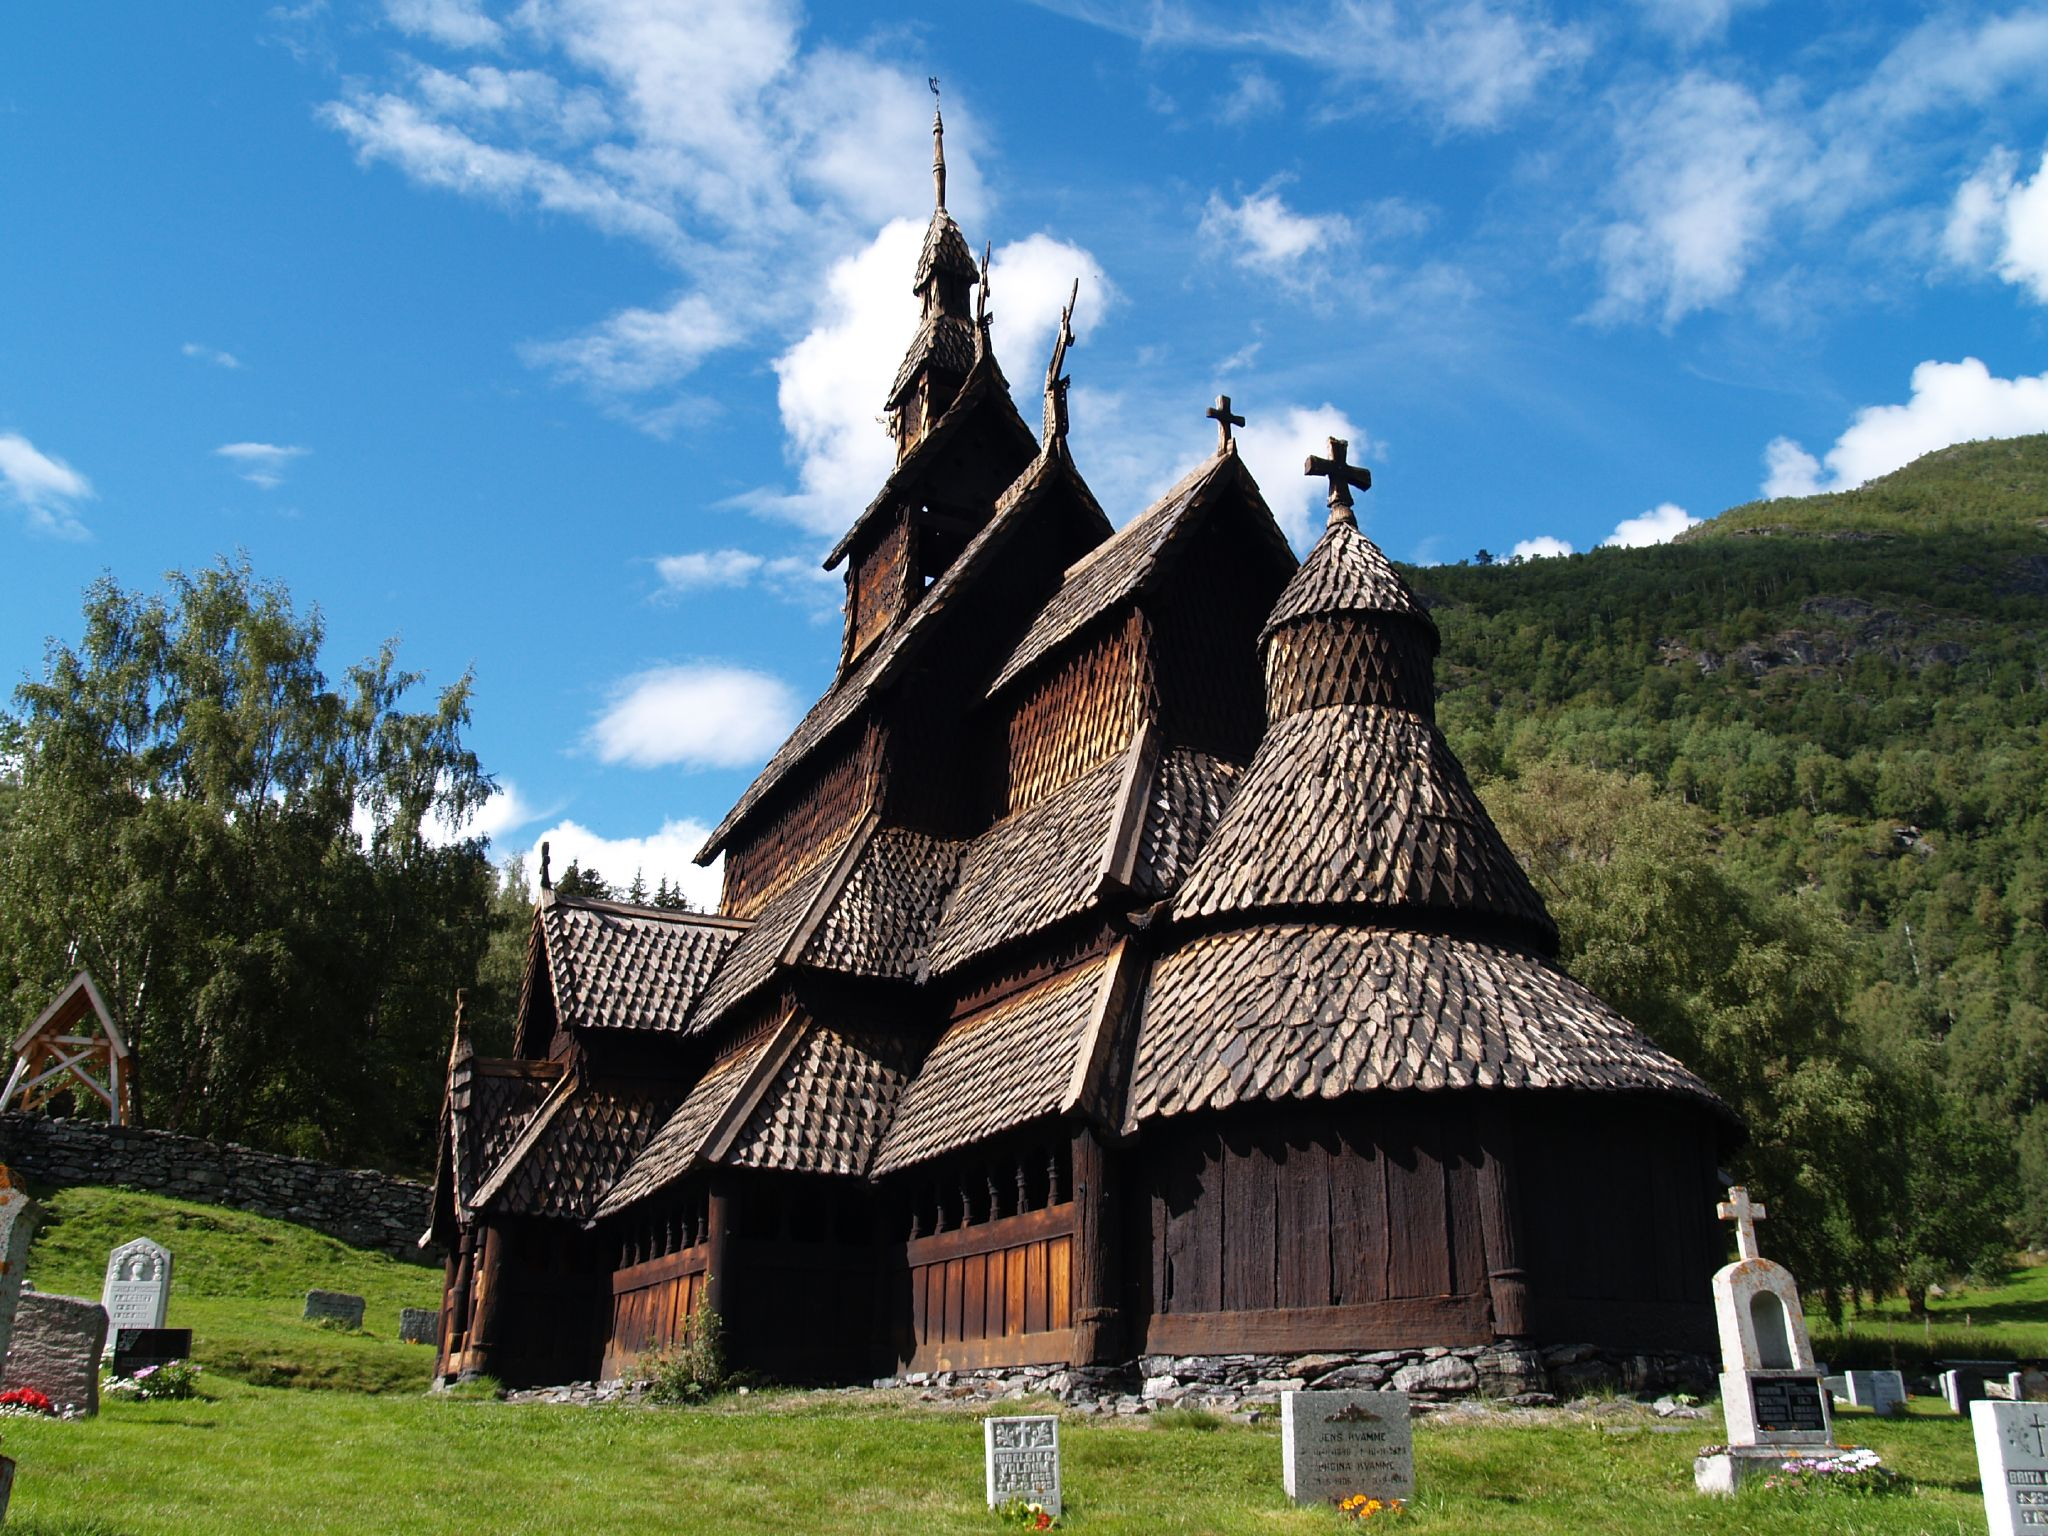 800 year old stave church made entirely from wood without